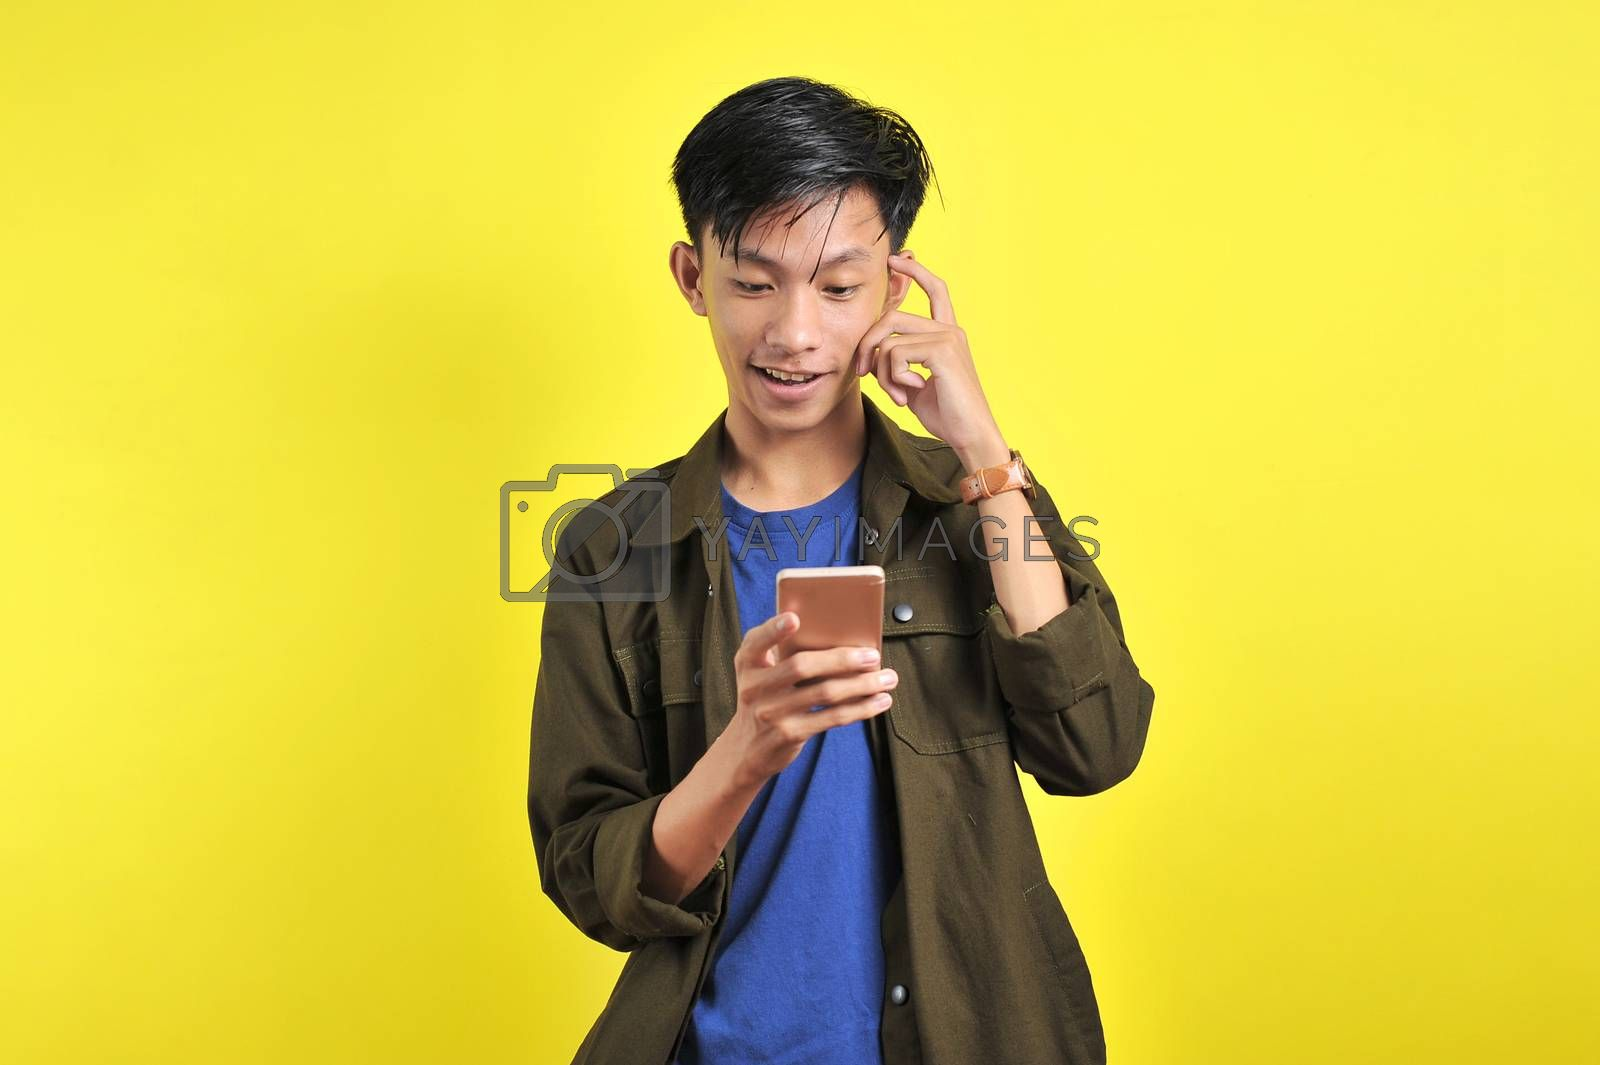 Portrait of smart person Young Asian man doing thinking gerture look at smartphone display, isolated on yellow